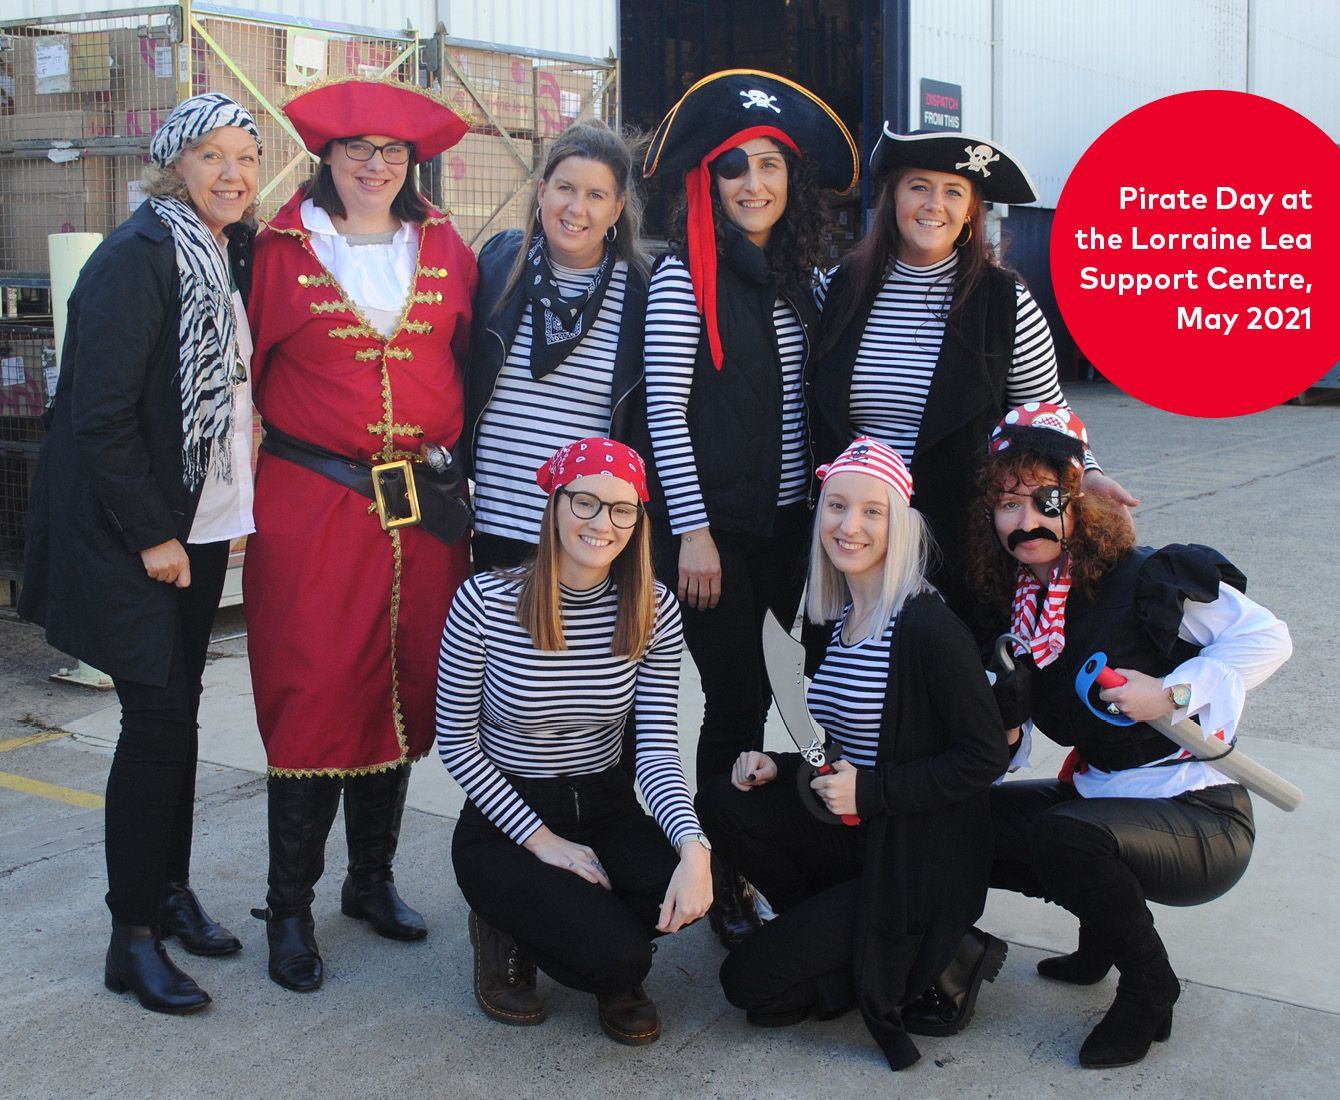 Pirate Day the Support Centre